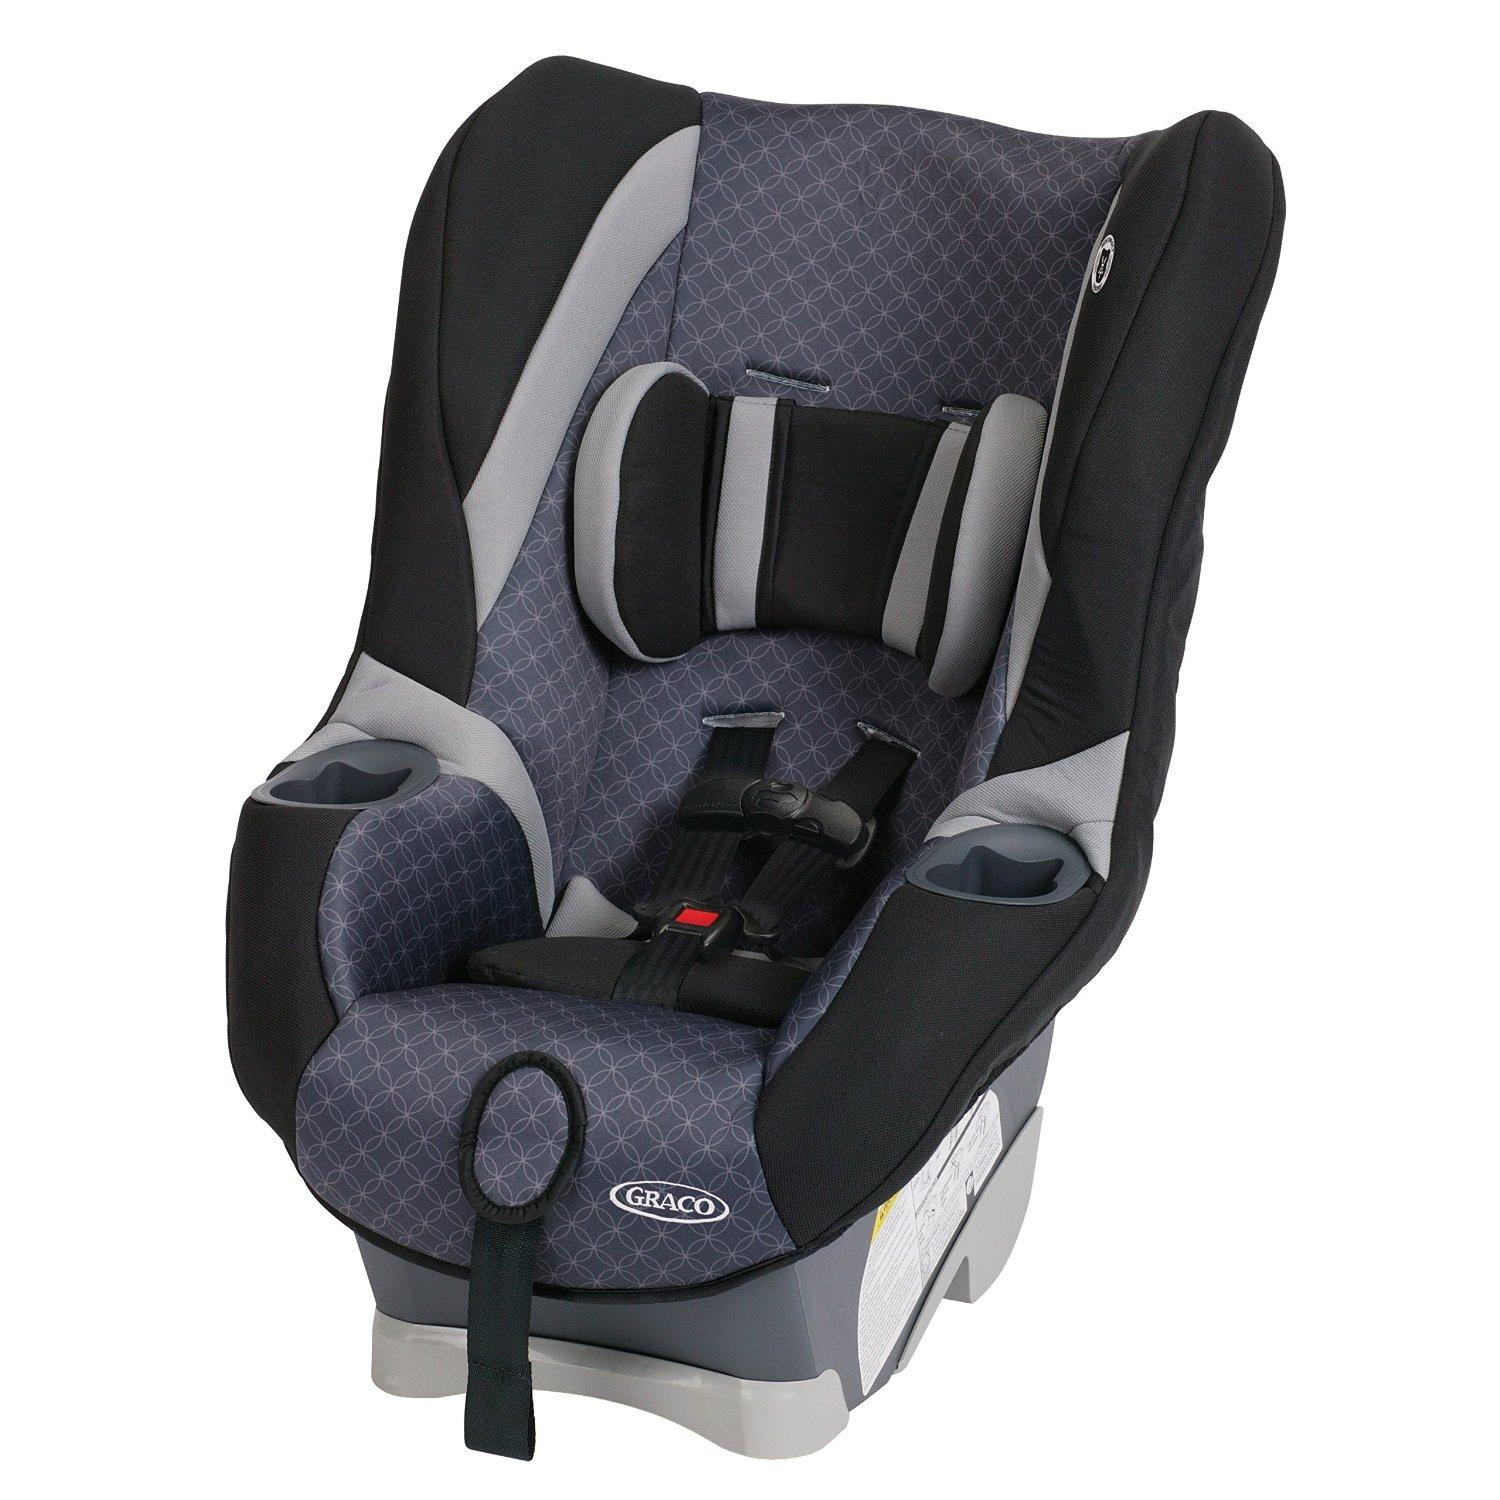 Graco My Ride 65 LX Convertible Car Seat, Rane